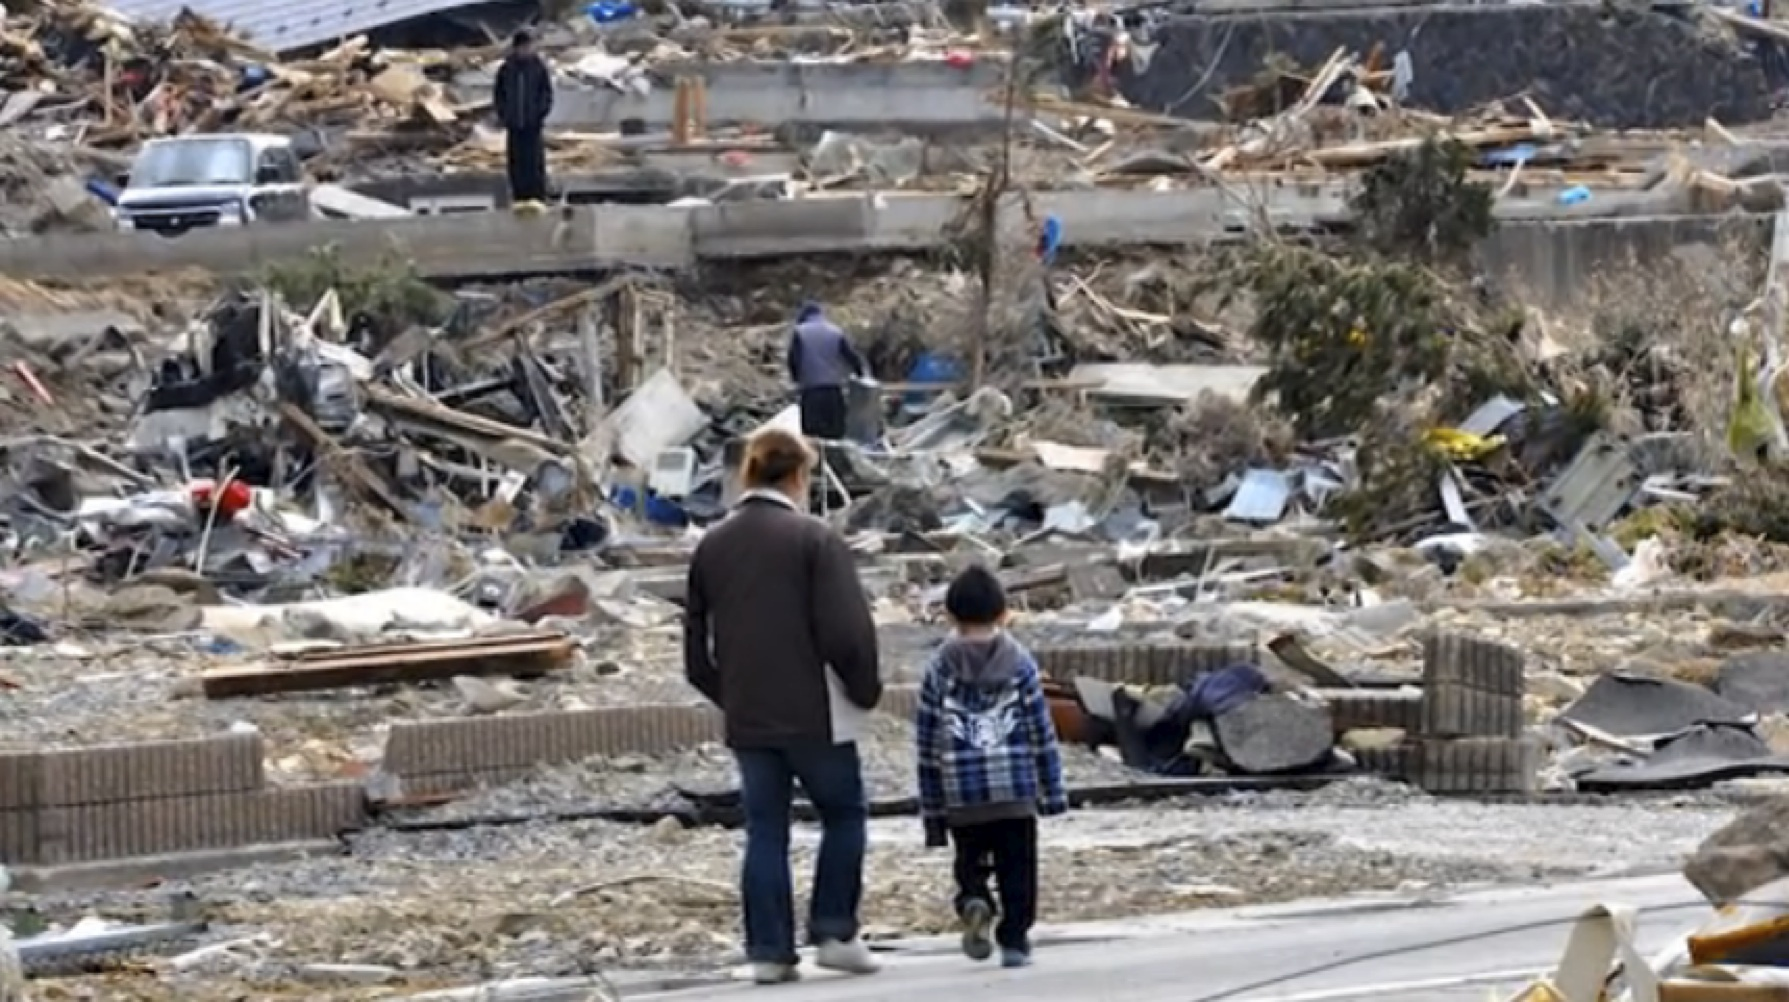 Major Natural Disasters In The World